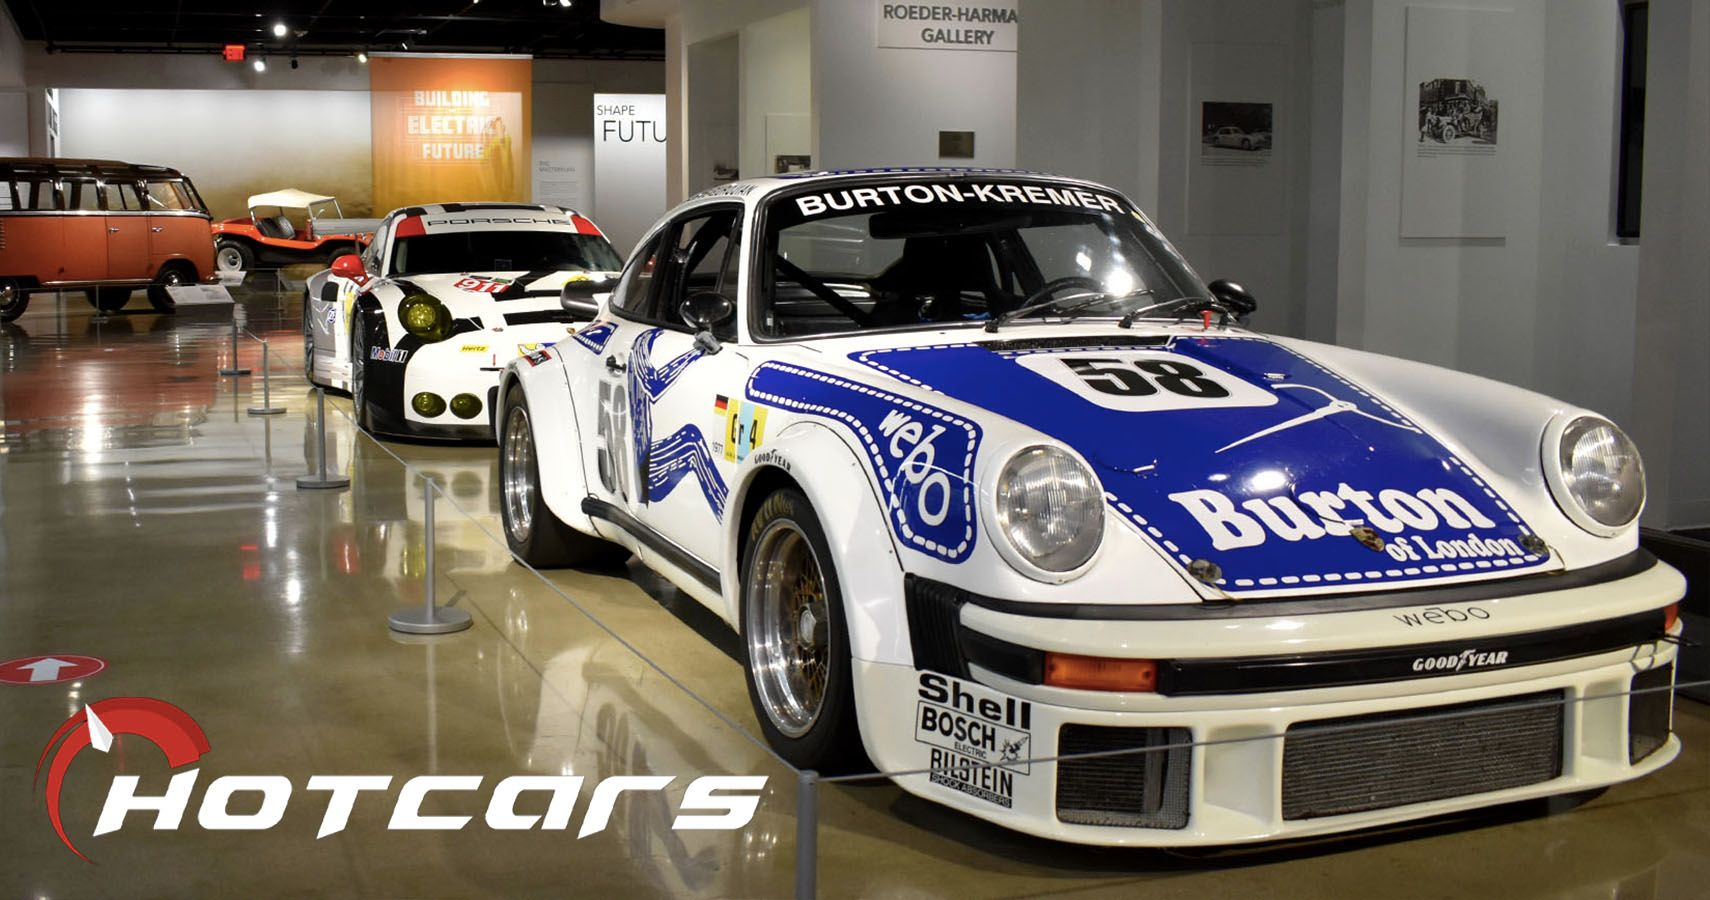 EXCLUSIVE: HotCars Checks Out The Petersen Museum's New Porsche Racing Exhibit